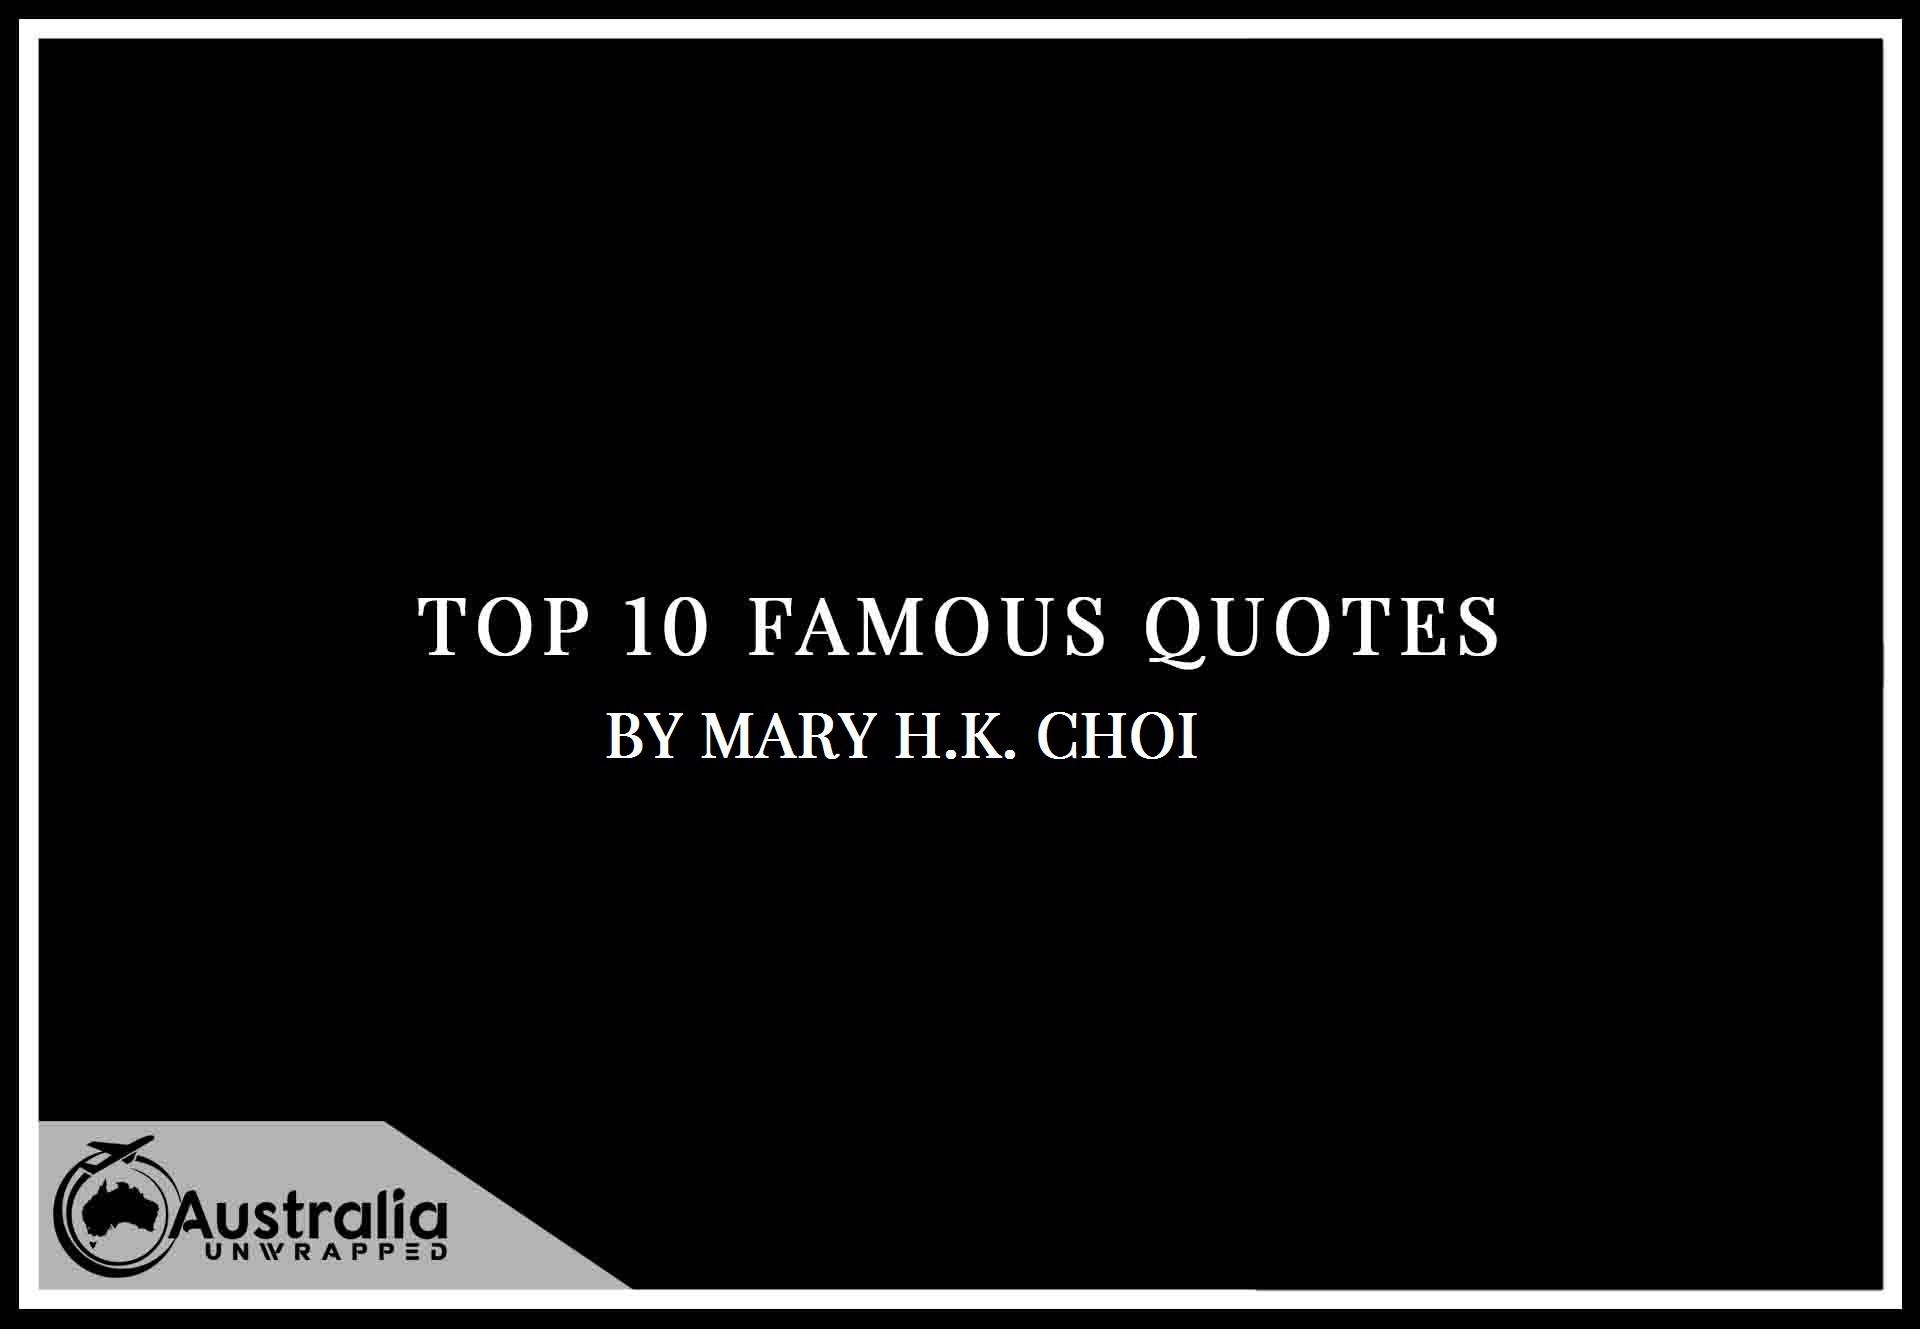 Mary H.K. Choi's Top 10 Popular and Famous Quotes